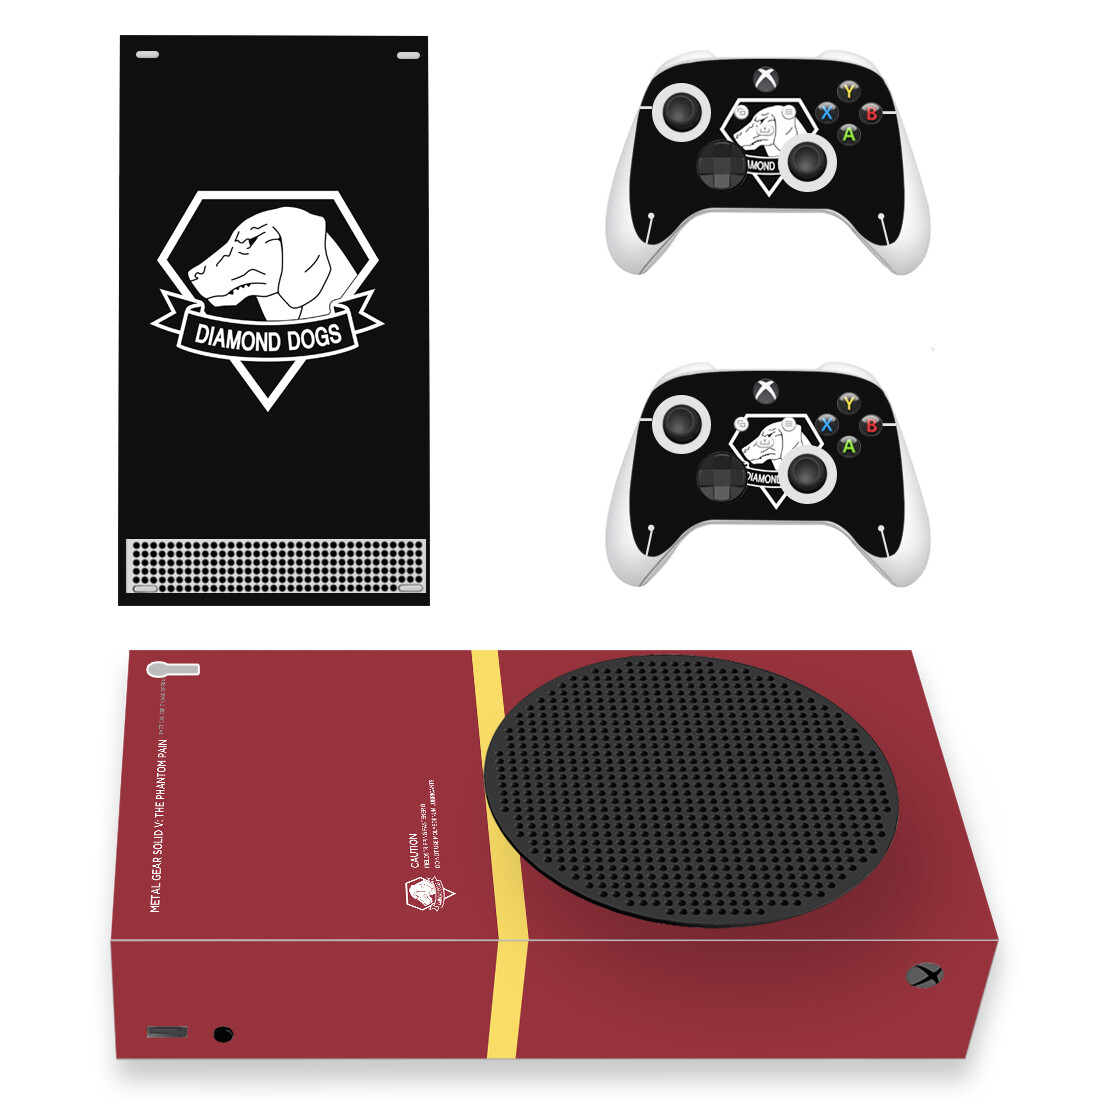 Diamond Dogs Metal Gear Skin Sticker For Xbox Series S And Controllers